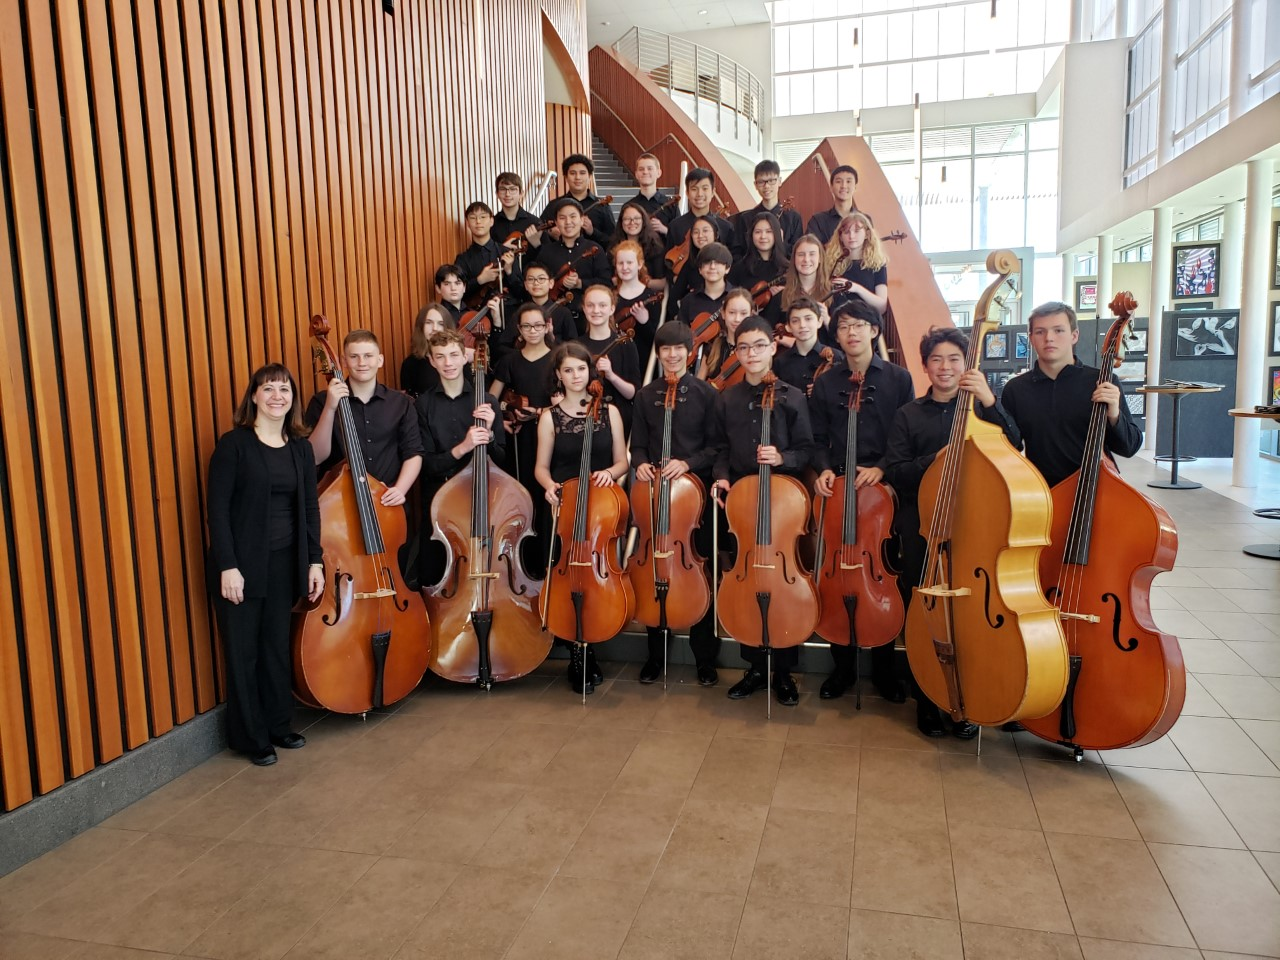 Murchison Middle School Orchestra and Guitar No Hassle Fundraiser